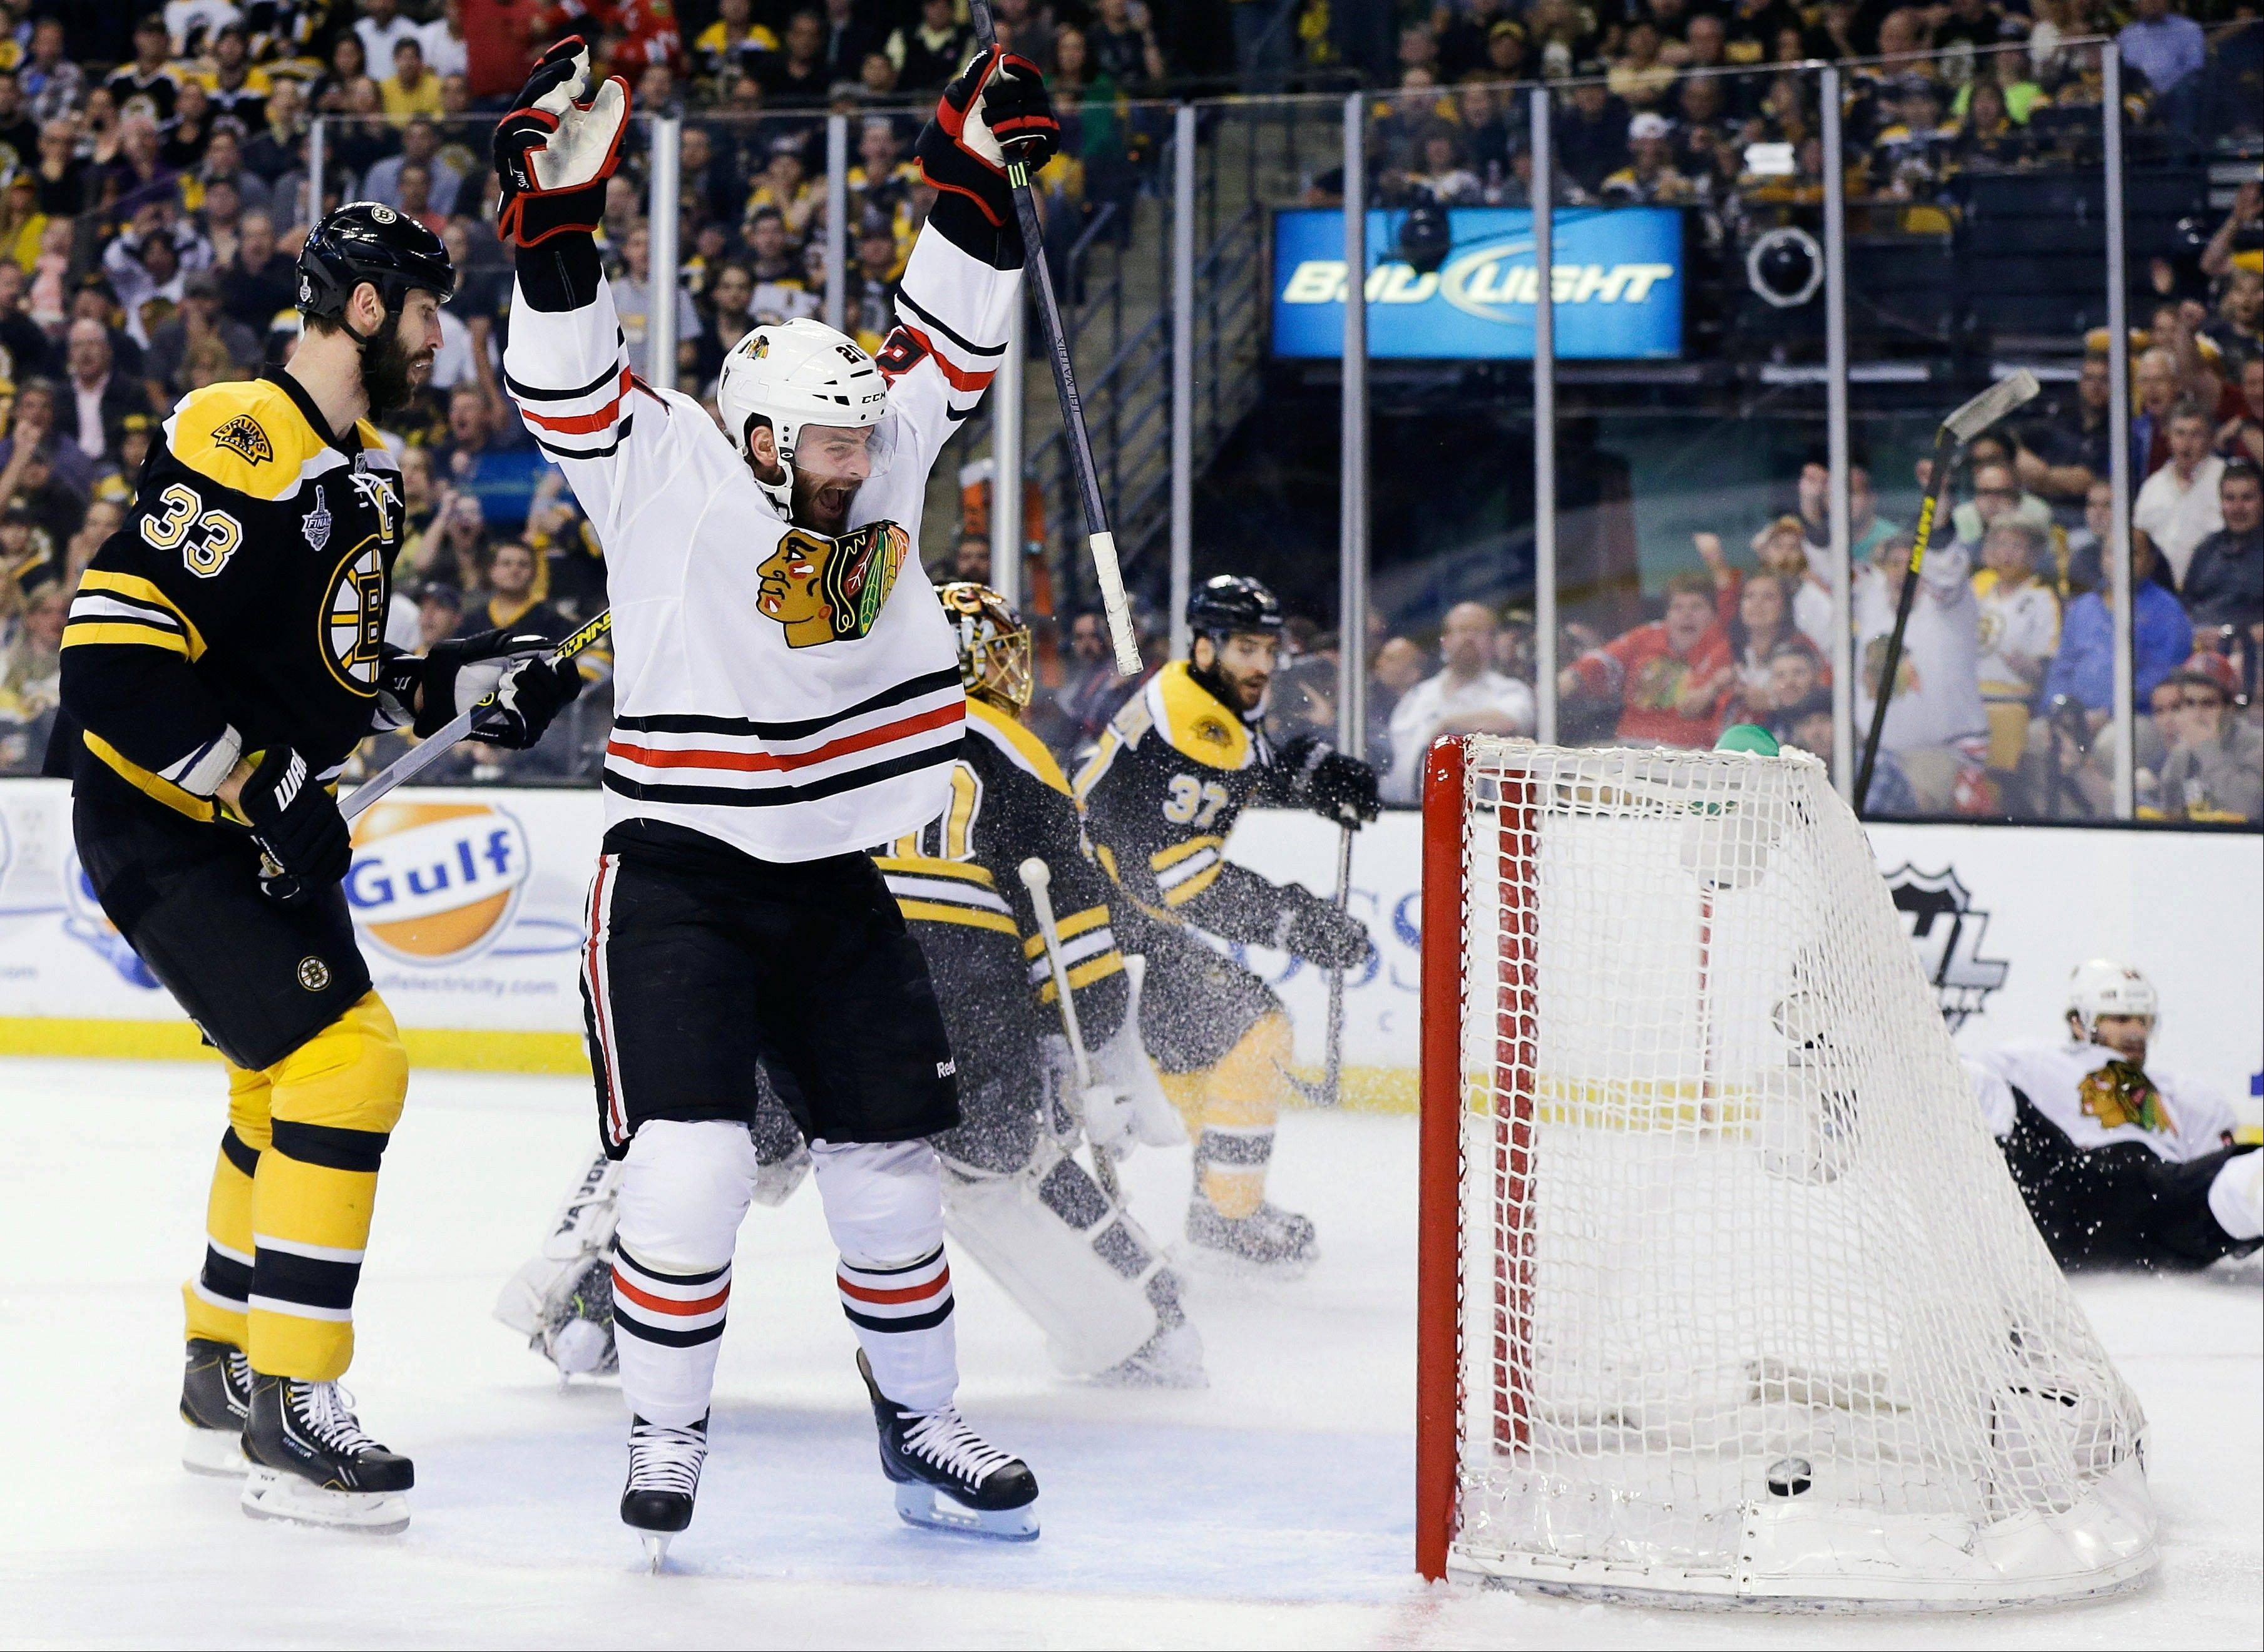 Blackhawks left wing Brandon Saad, center, celebrates a goal by Blackhawks center Michal Handzus, right, in front of Boston Bruins defenseman Zdeno Chara (33) during the first period last night in Boston. Five other Blackhawks scored in the overtime Game 4 win.